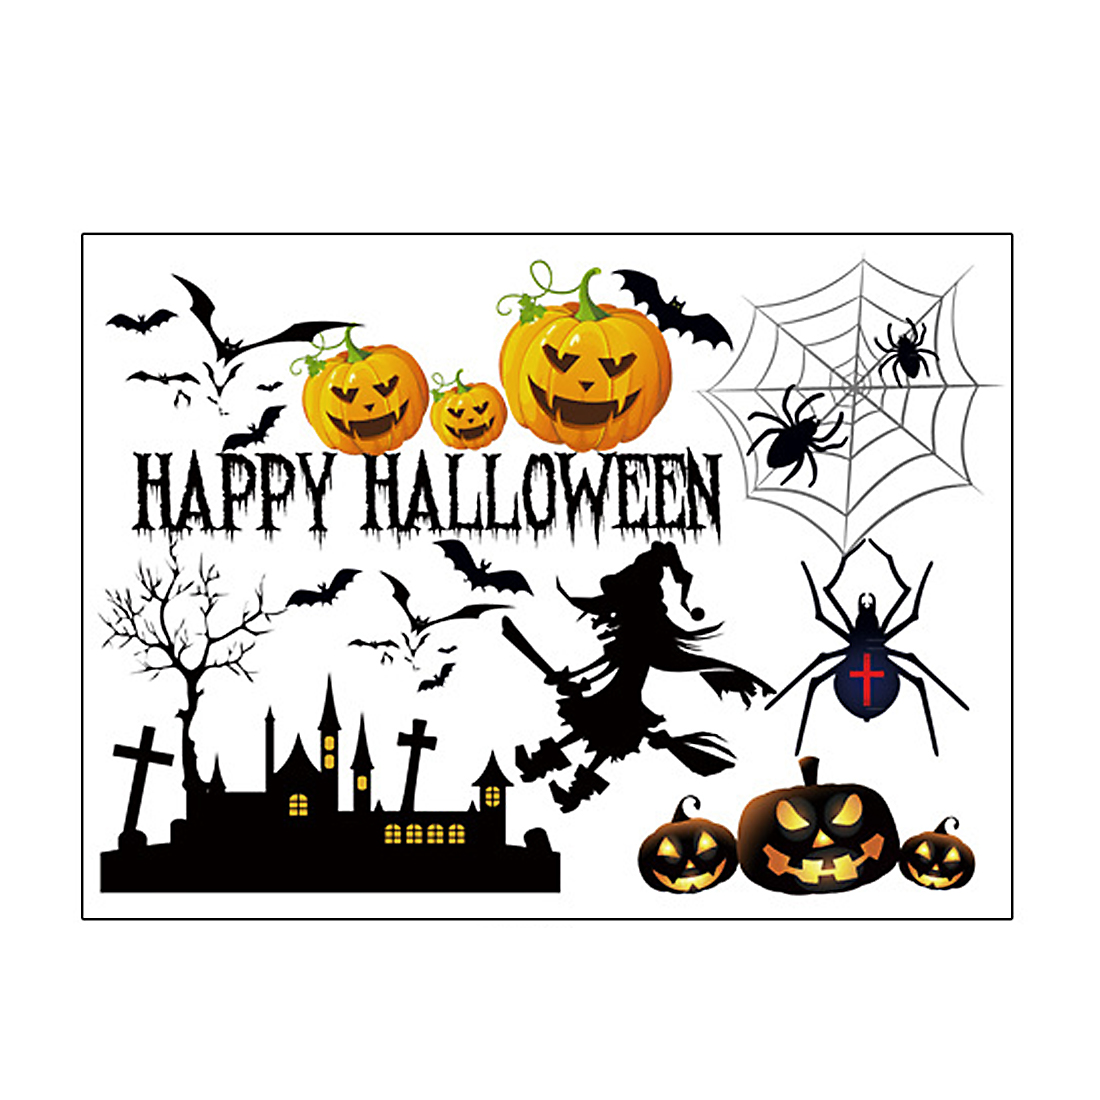 Halloween Pumpkin Witch Moon Bat Pattern Wall Sticker Decal Home Decor